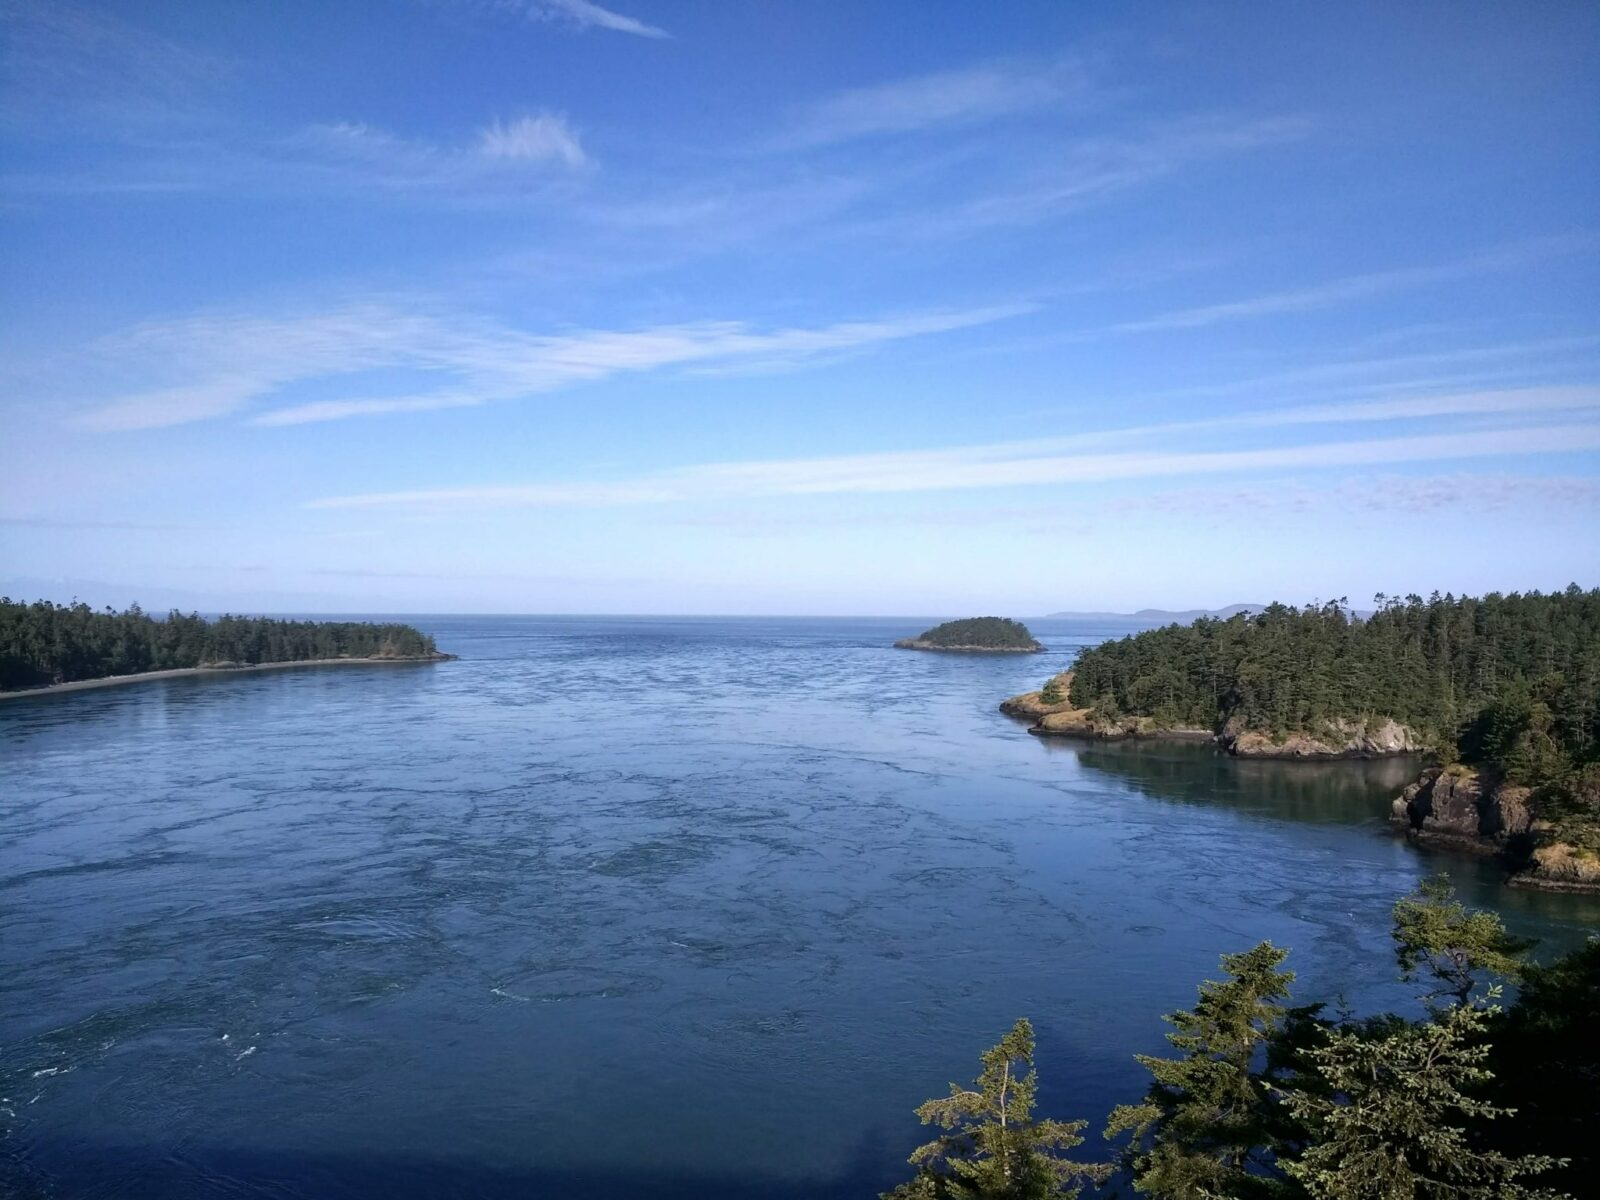 View from high above Deception Pass between Whidbey Island and Fidalgo Island. It is a sunny day and the water is blue and swirling with current between forested hills on each side of the water